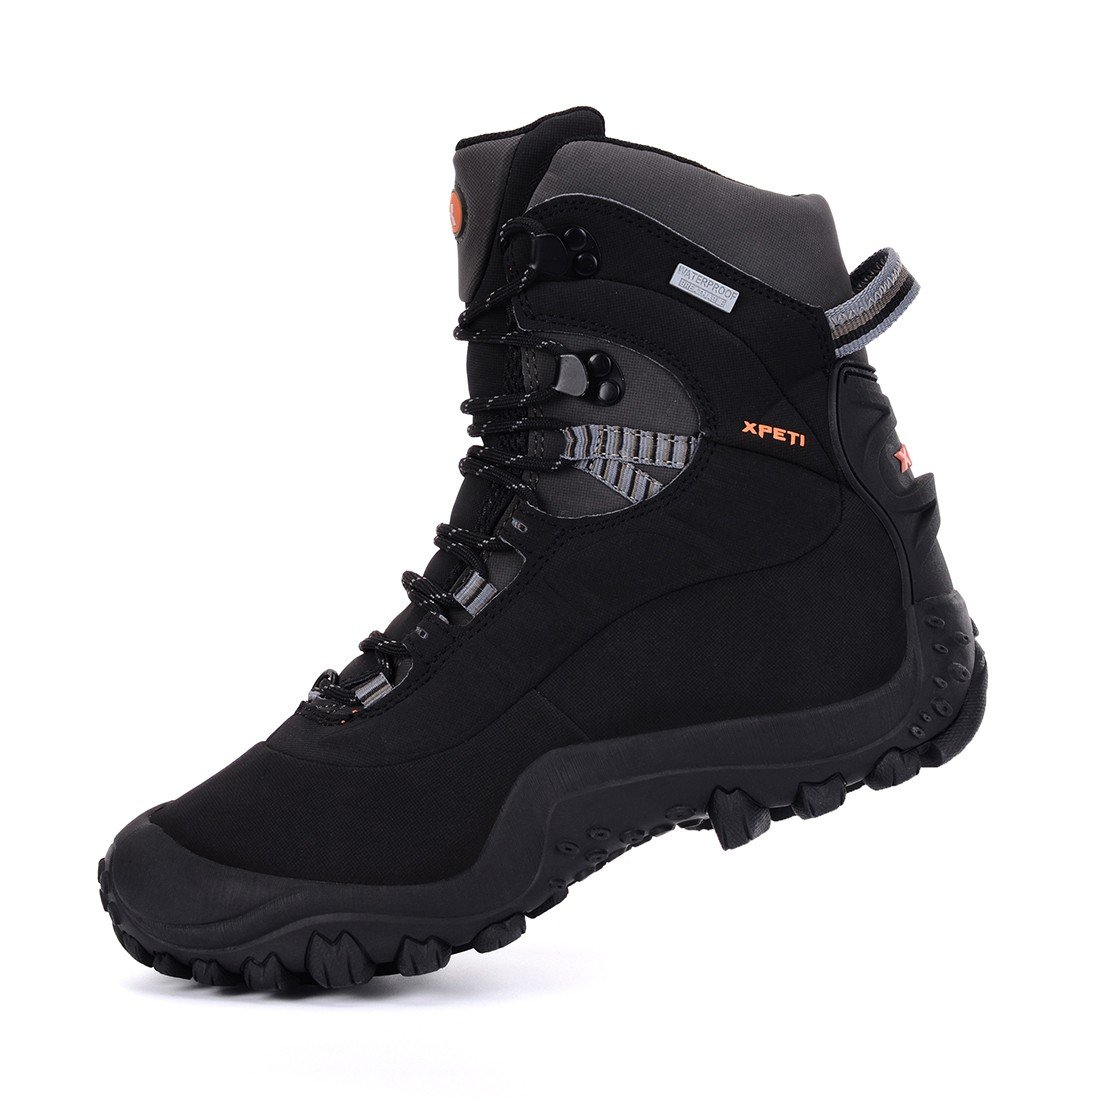 204b3de3df0 XPETI Men's Thermator Mid-Rise Waterproof Hiking Trekking Insulated Outdoor  Boots